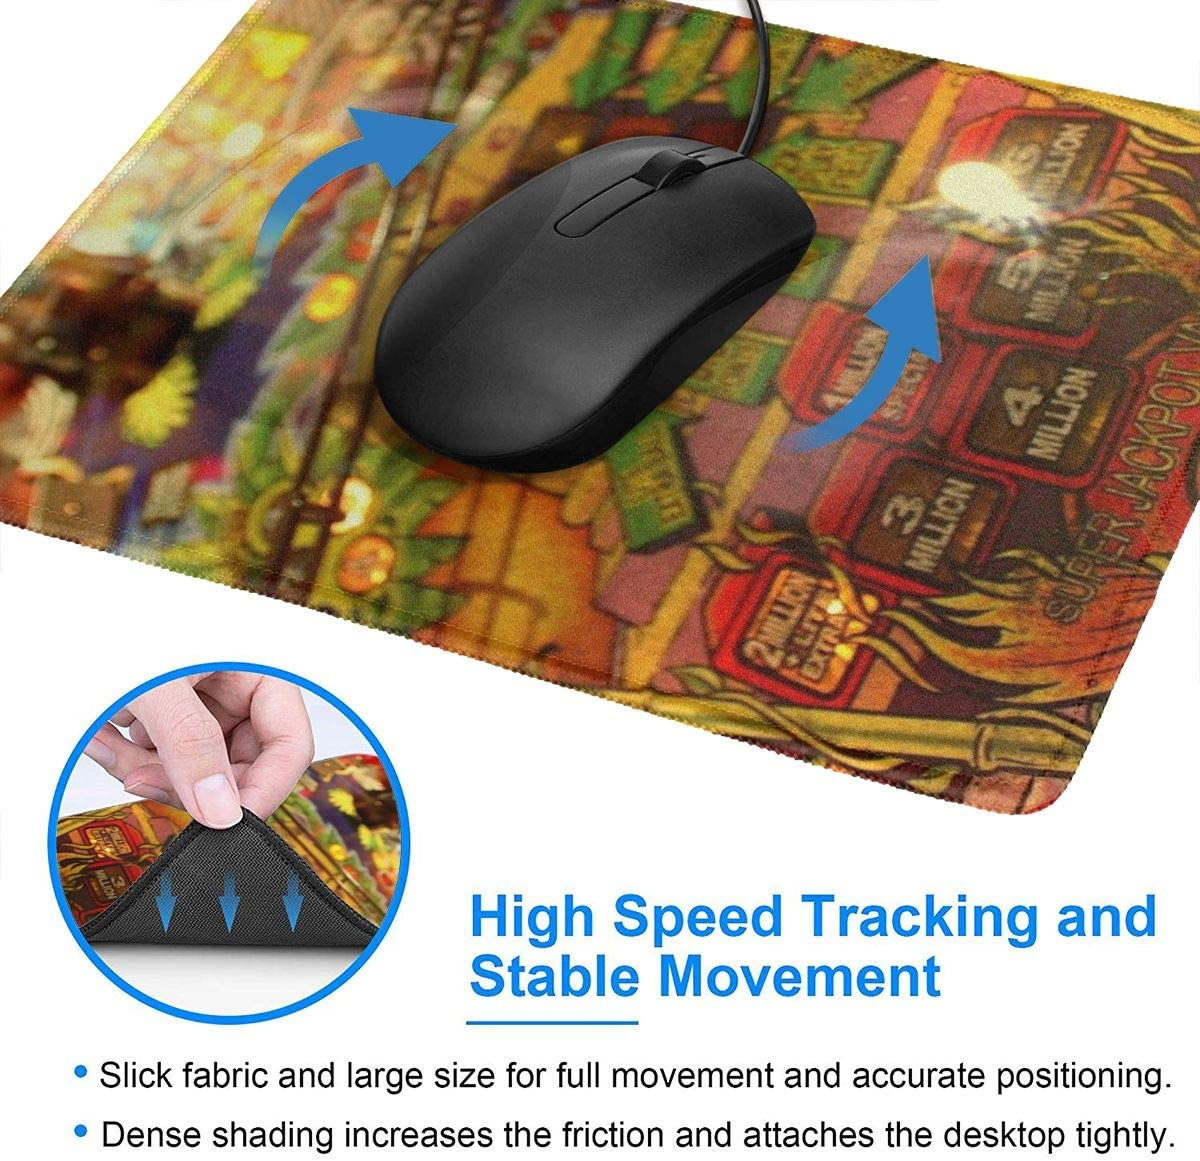 Ive Got Wood Distressed Version Hemming The Mouse Pad 10 X 12 Inch Esports Office Study Computer